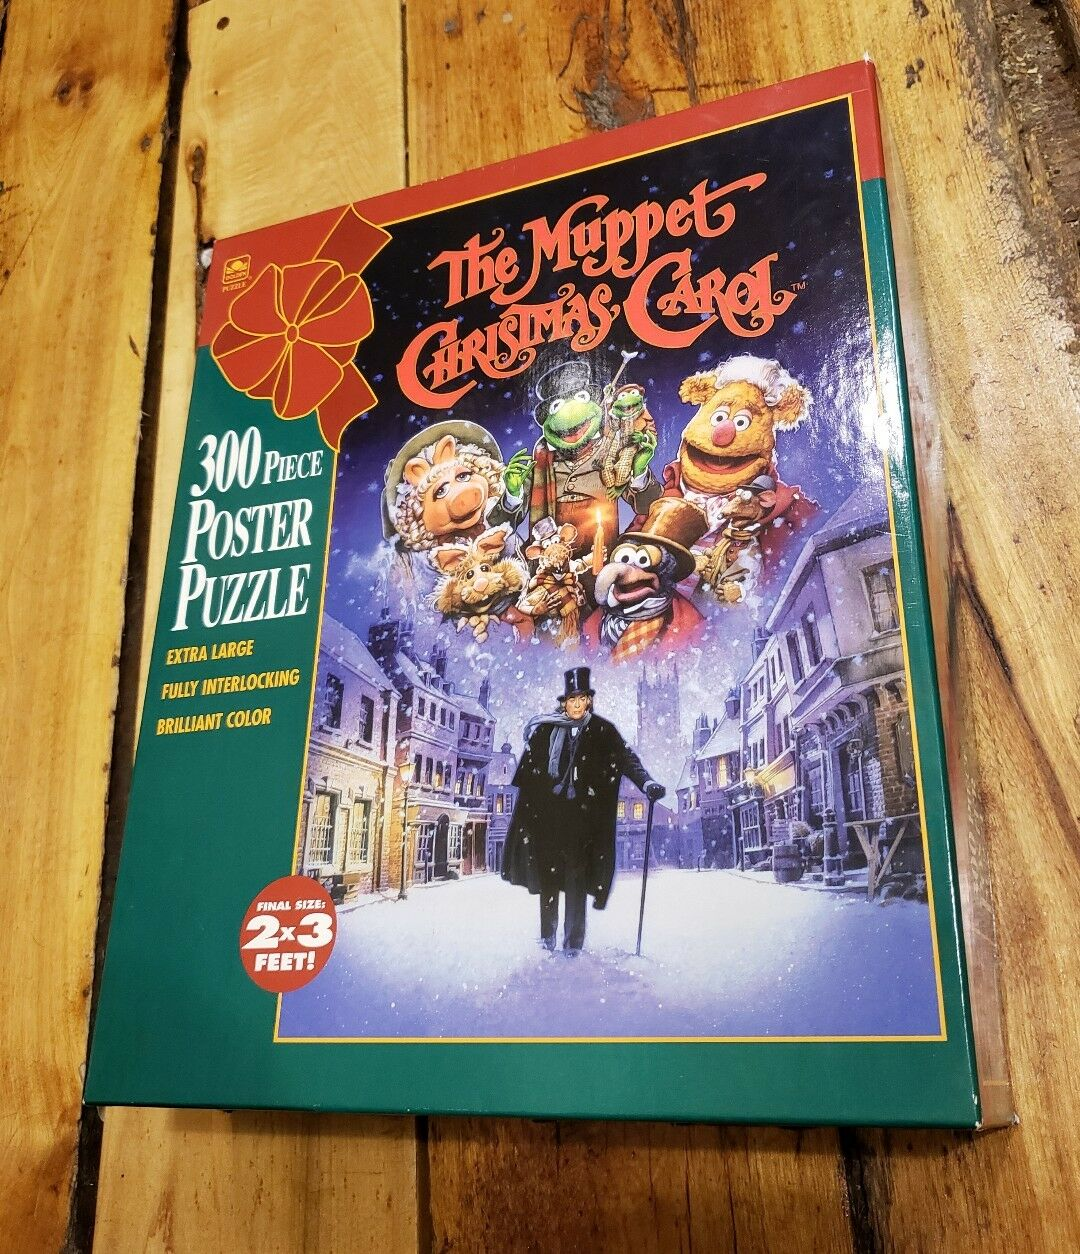 The Muppet Christmas Carol Movie Poster Puzzle (300-Piece) oroen kids COMPLETE